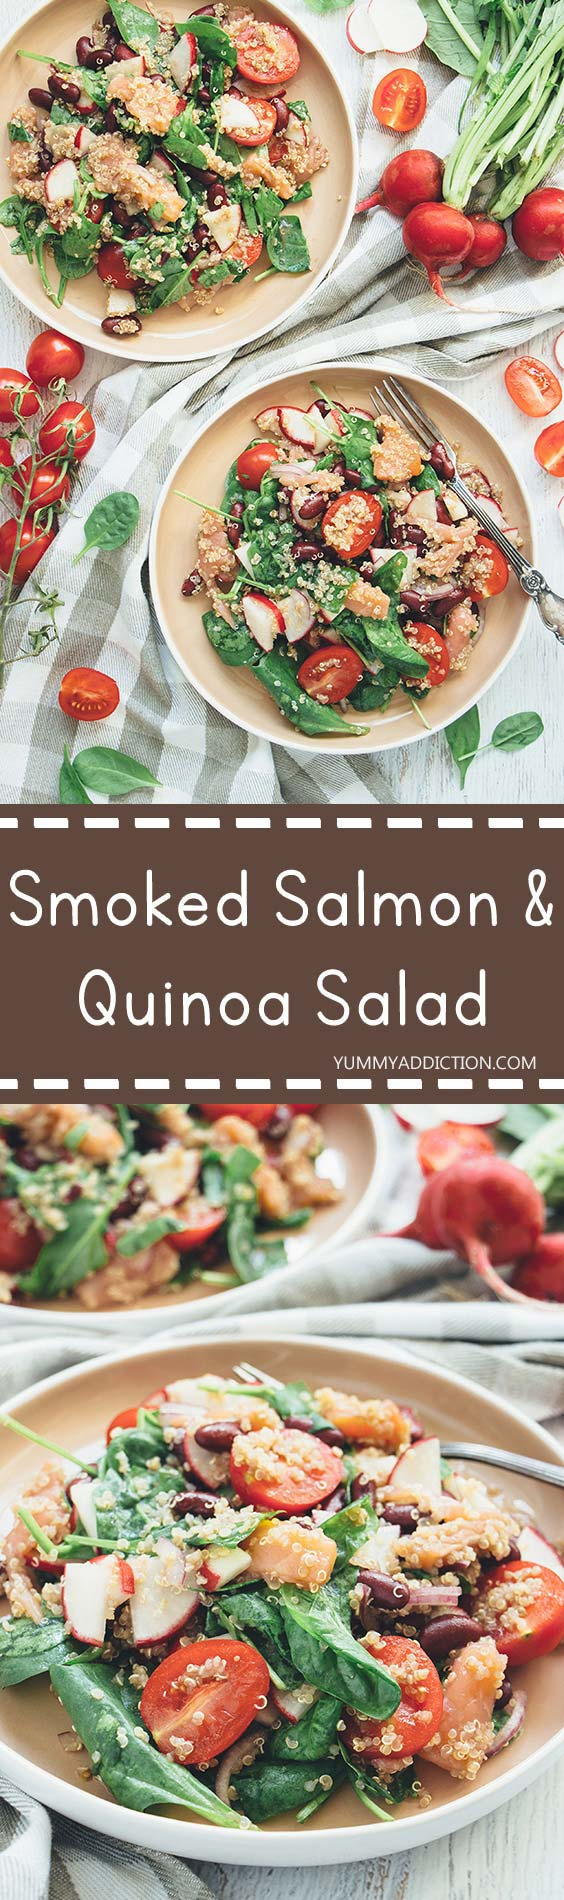 This Smoked Salmon and Quinoa Salad also features radishes, beans, tomatoes, spinach, and a gorgeous sesame oil dressing. Delicious, filling, and nutritious!   yummyaddiction.com